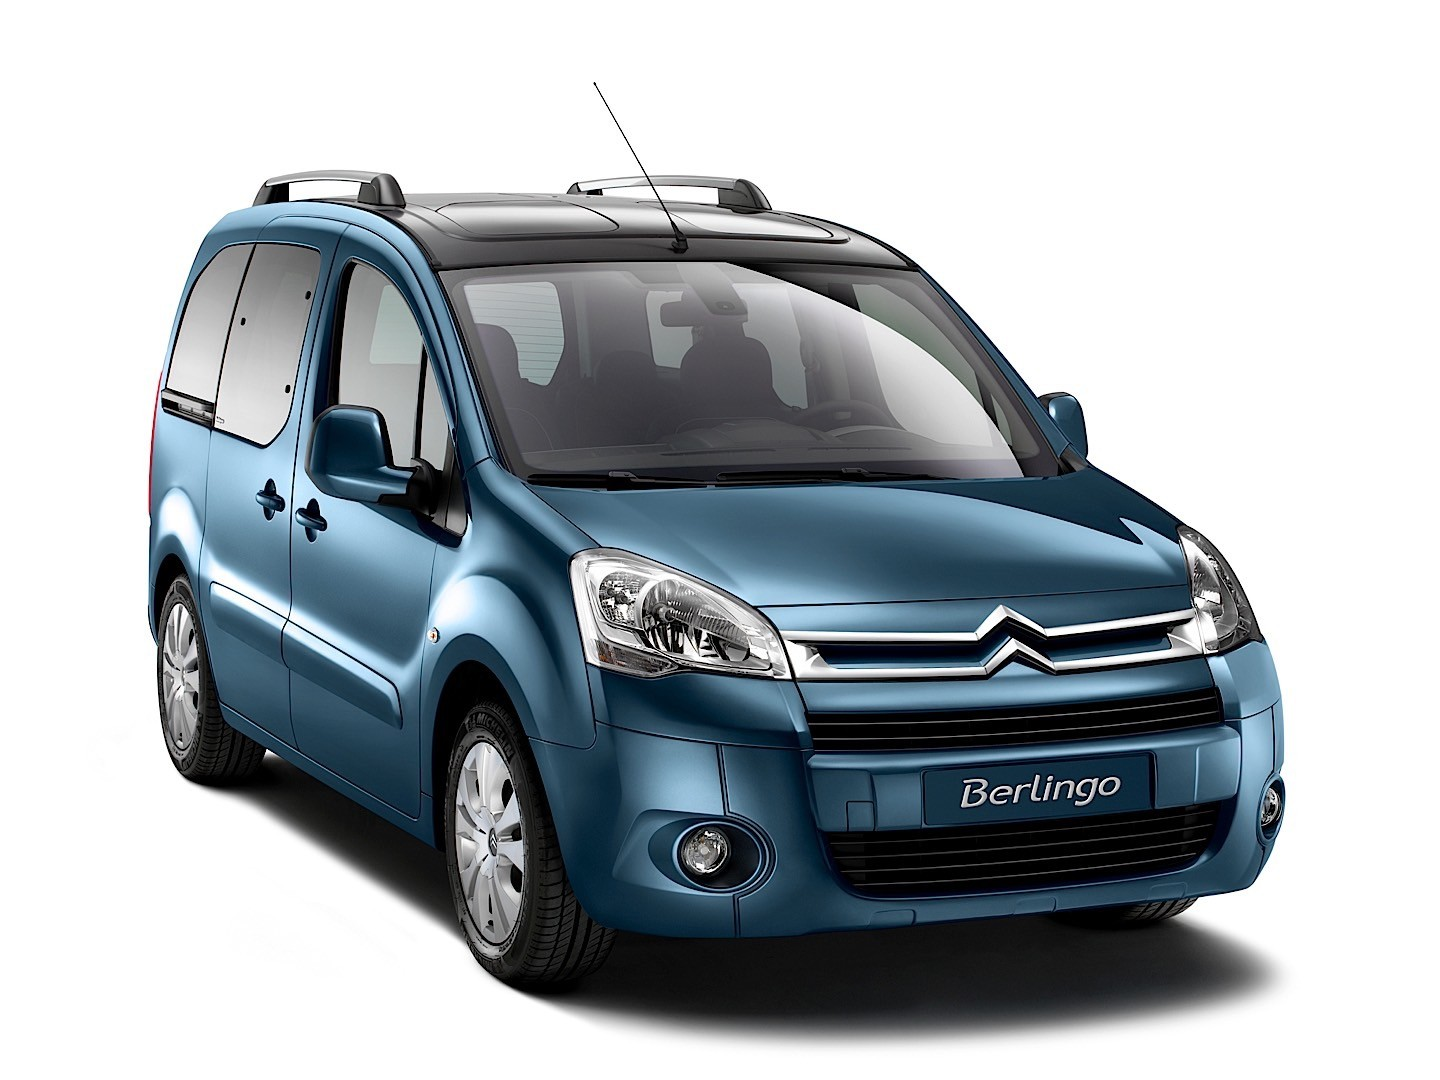 citroen berlingo specs 2008 2009 2010 2011 2012. Black Bedroom Furniture Sets. Home Design Ideas